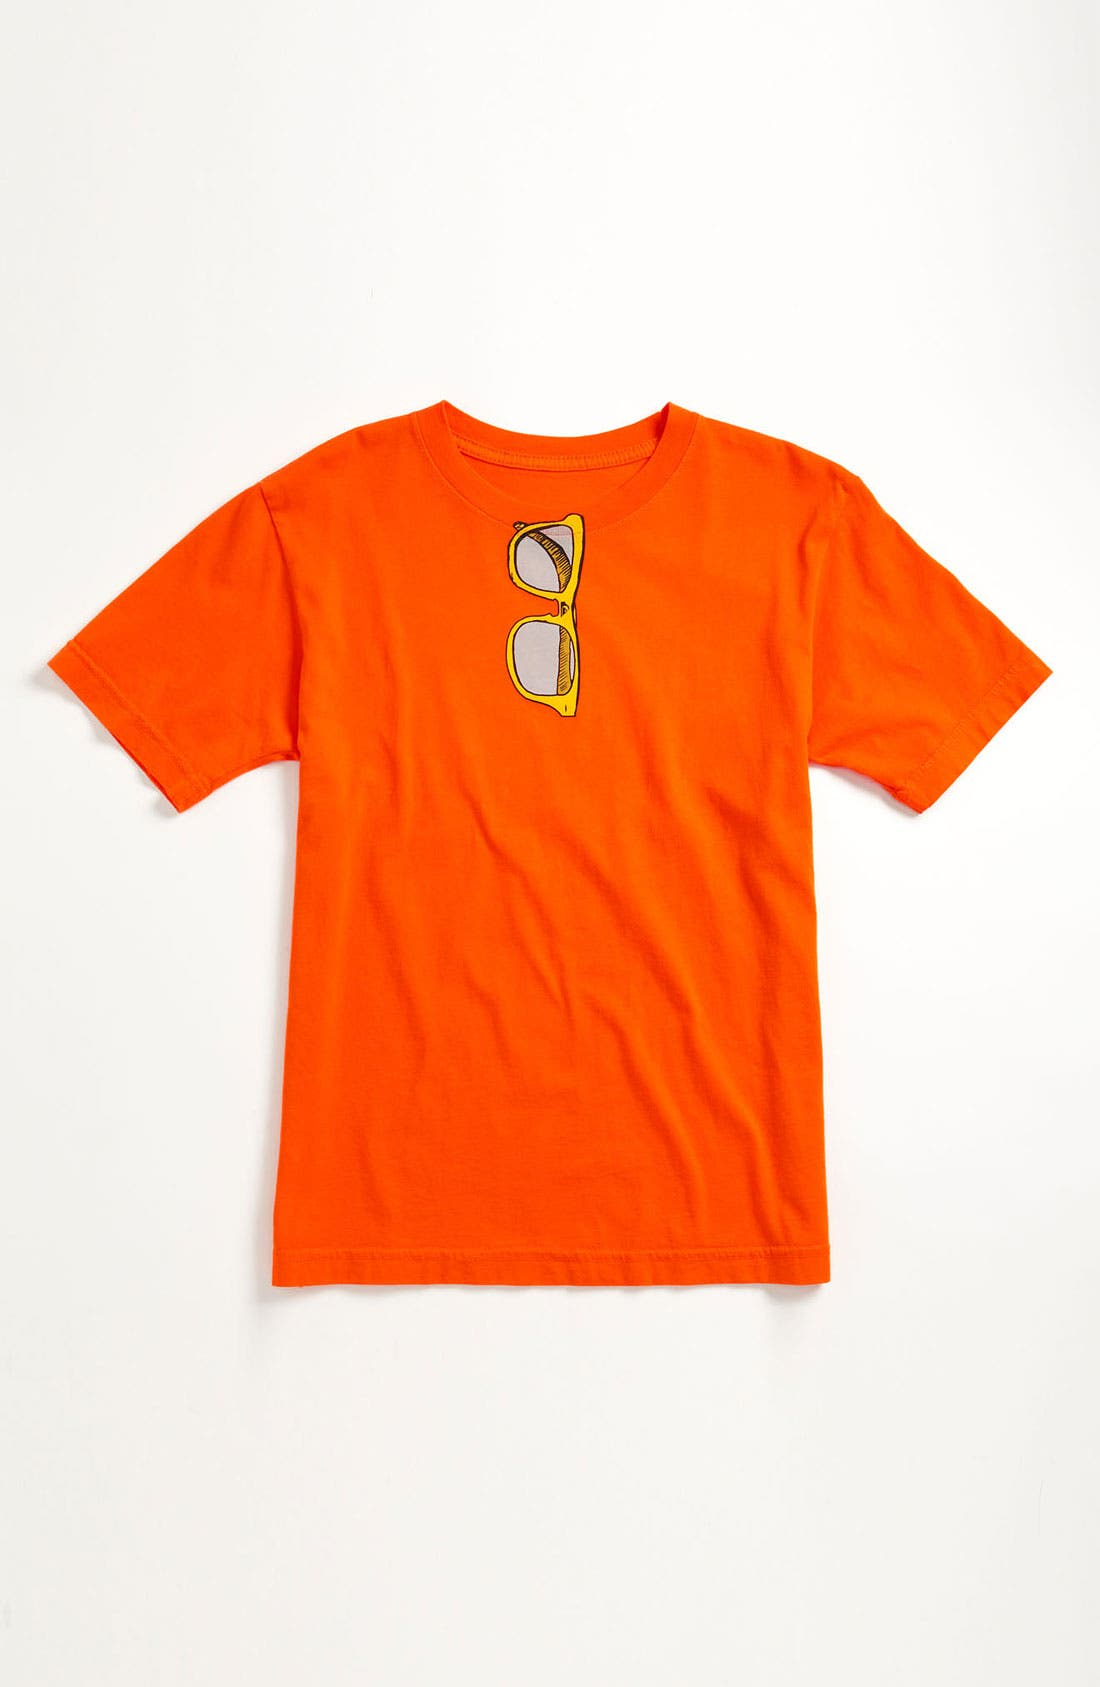 Alternate Image 1 Selected - Quiksilver Graphic T-Shirt (Big Boys)